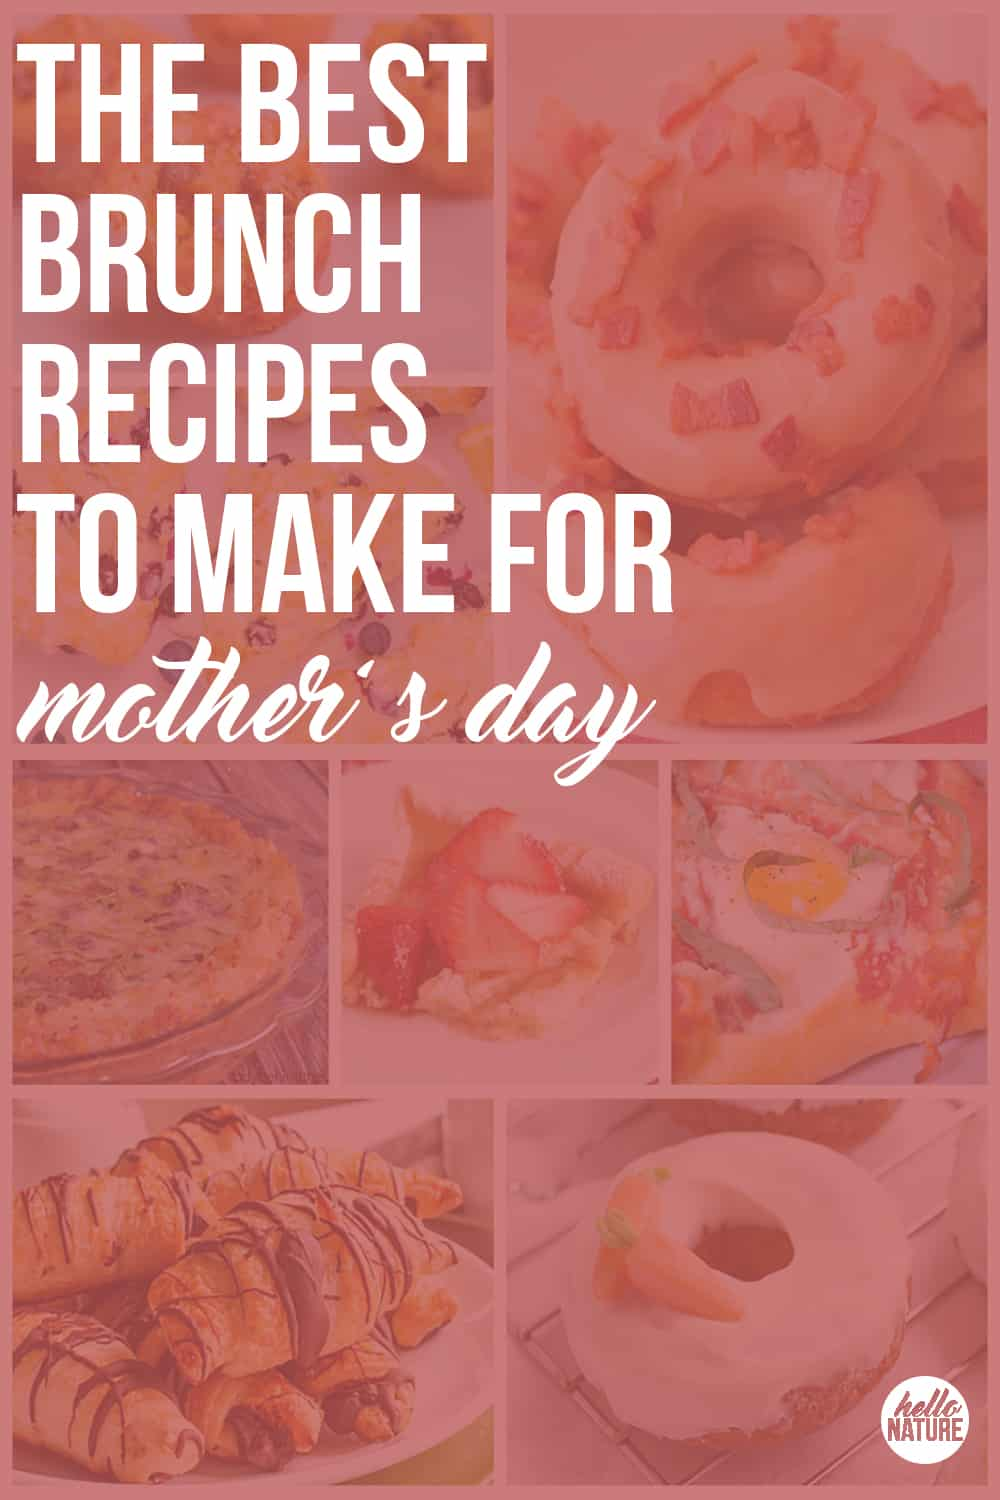 Mom deserves only the best on her special day. Celebrate with these delicious Mother's Day brunch recipes that will please the whole family!